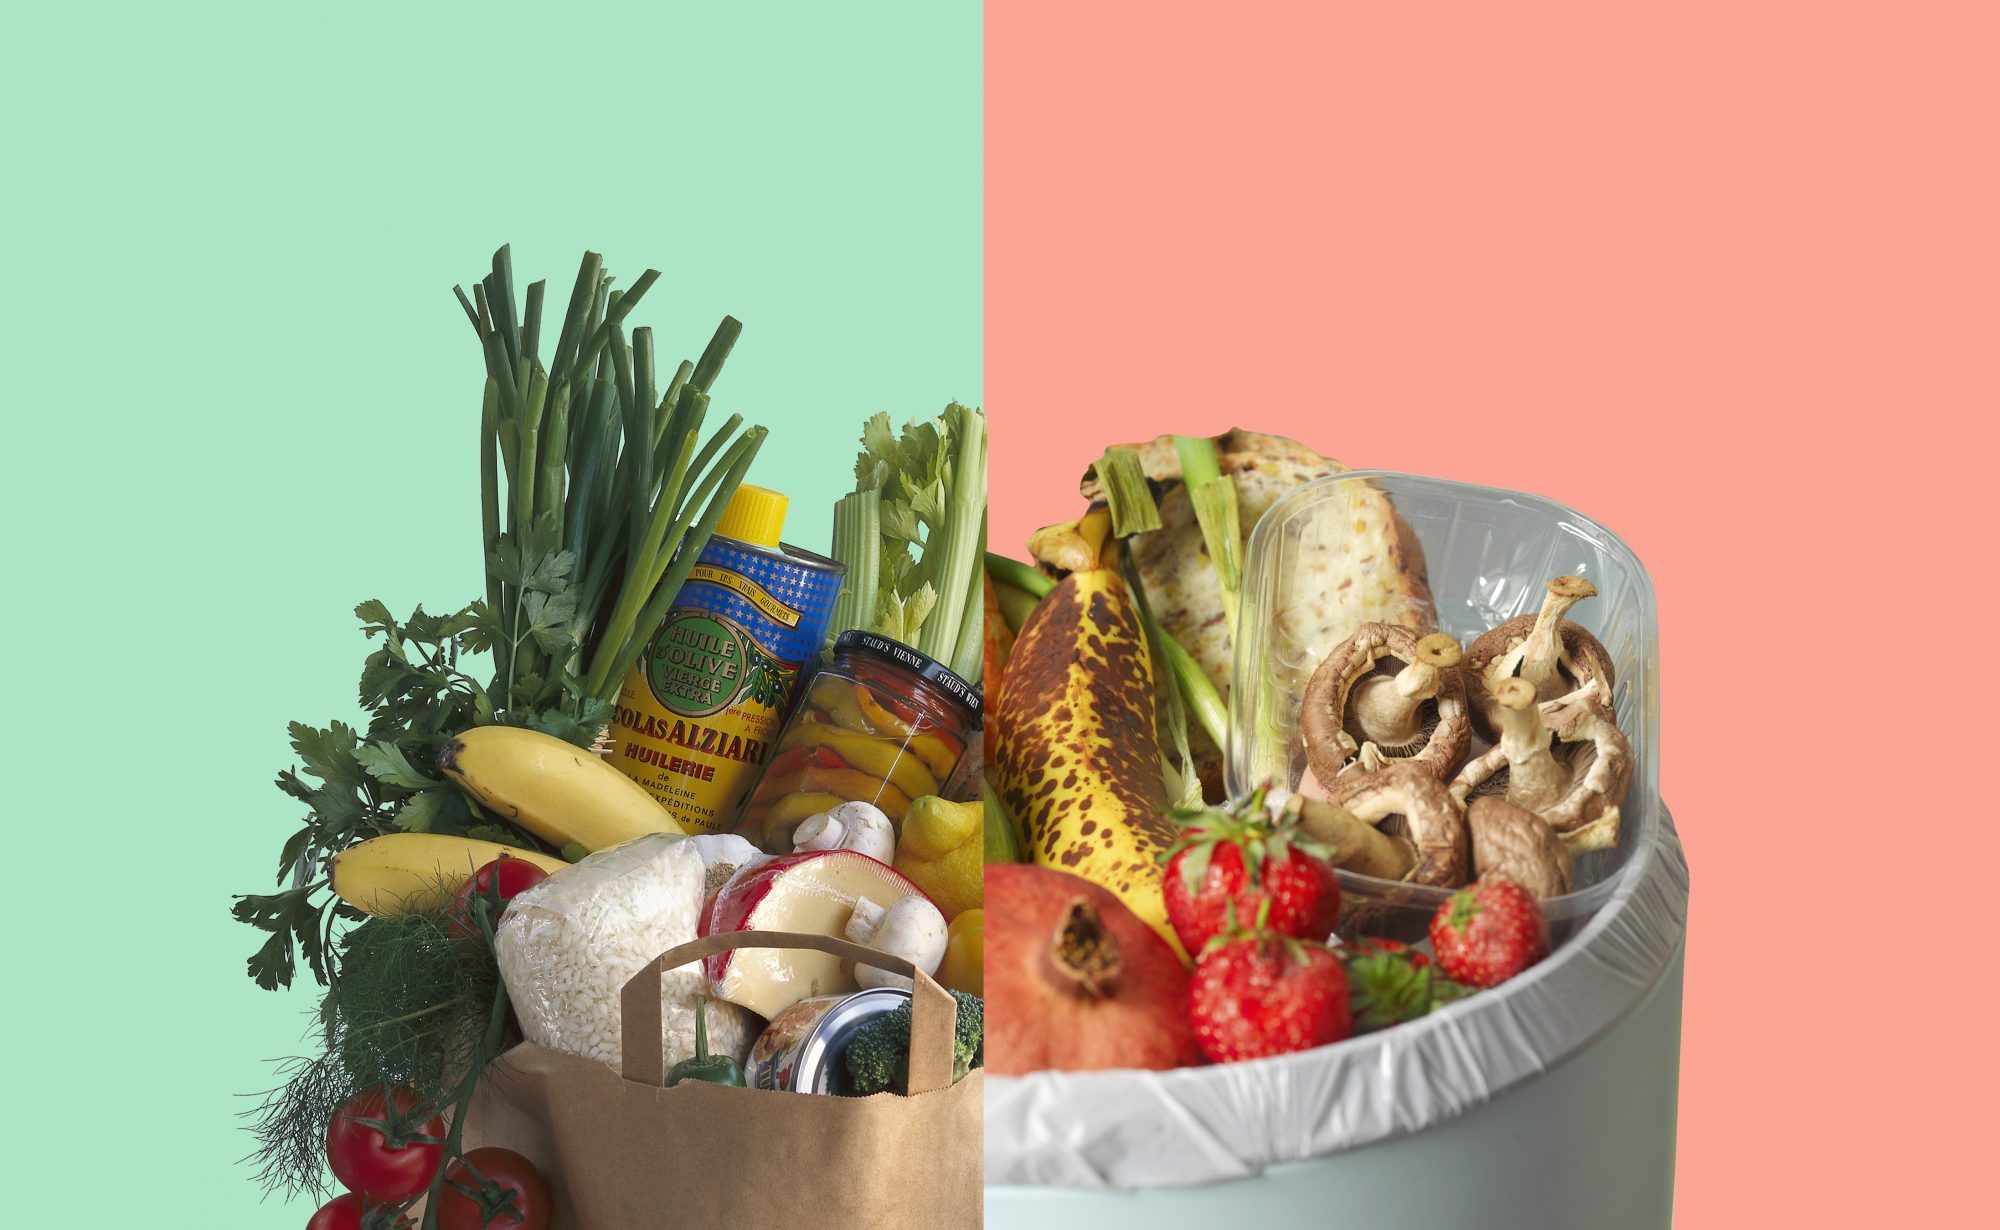 How to Reduce Food Waste in Your Home